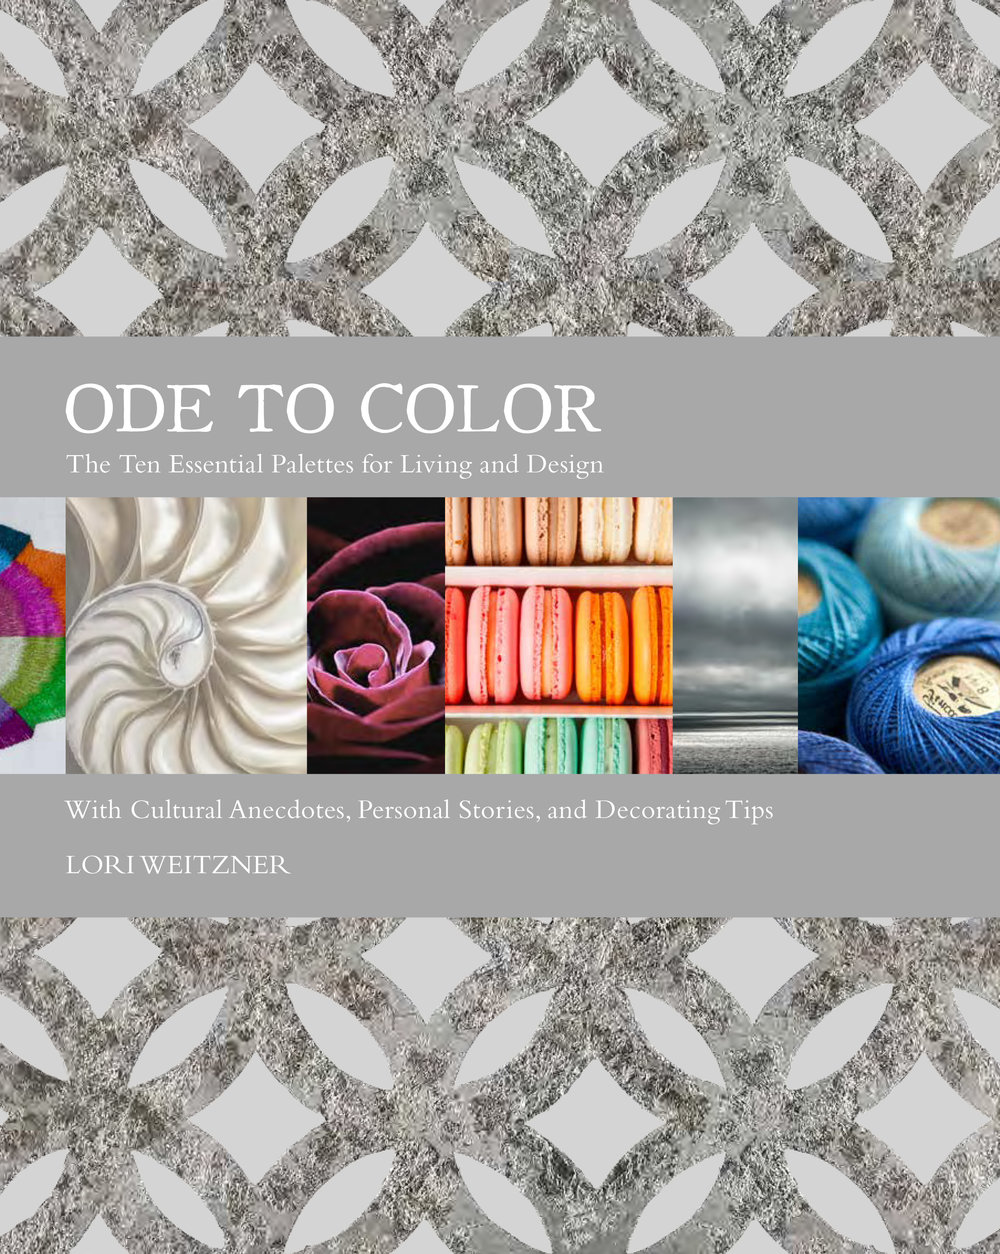 Ode to Color Cover - Lori Weitzner.jpg